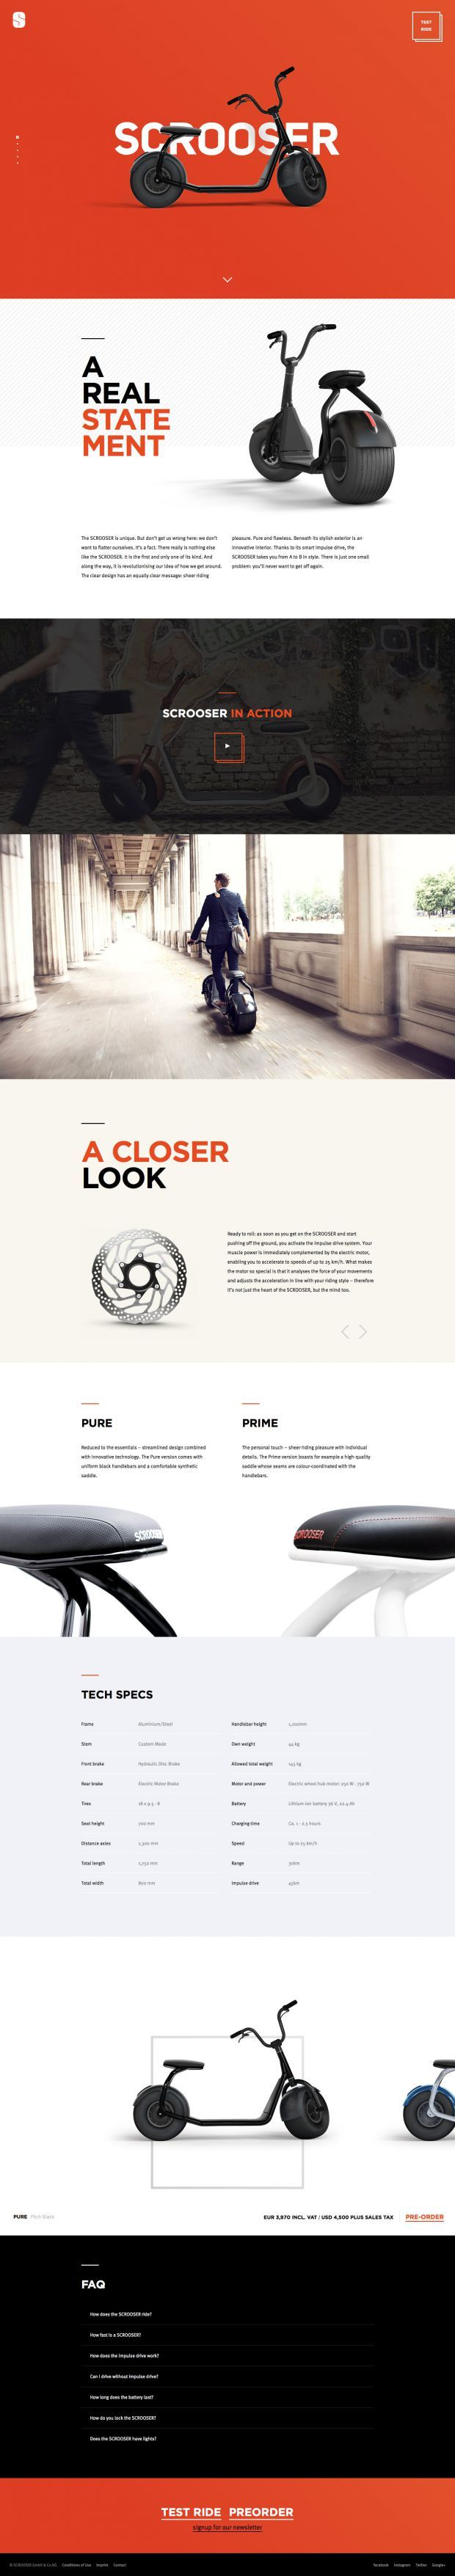 SCROOSER is real lifestyle. The SCROOSER is unique - Best Webdesign inspiration on www.niceoneilike.com #Product, #html5, #css3, #Inspiration, #Scrolling #Site, #Design, #Website, #Store, #Clean, #Unique